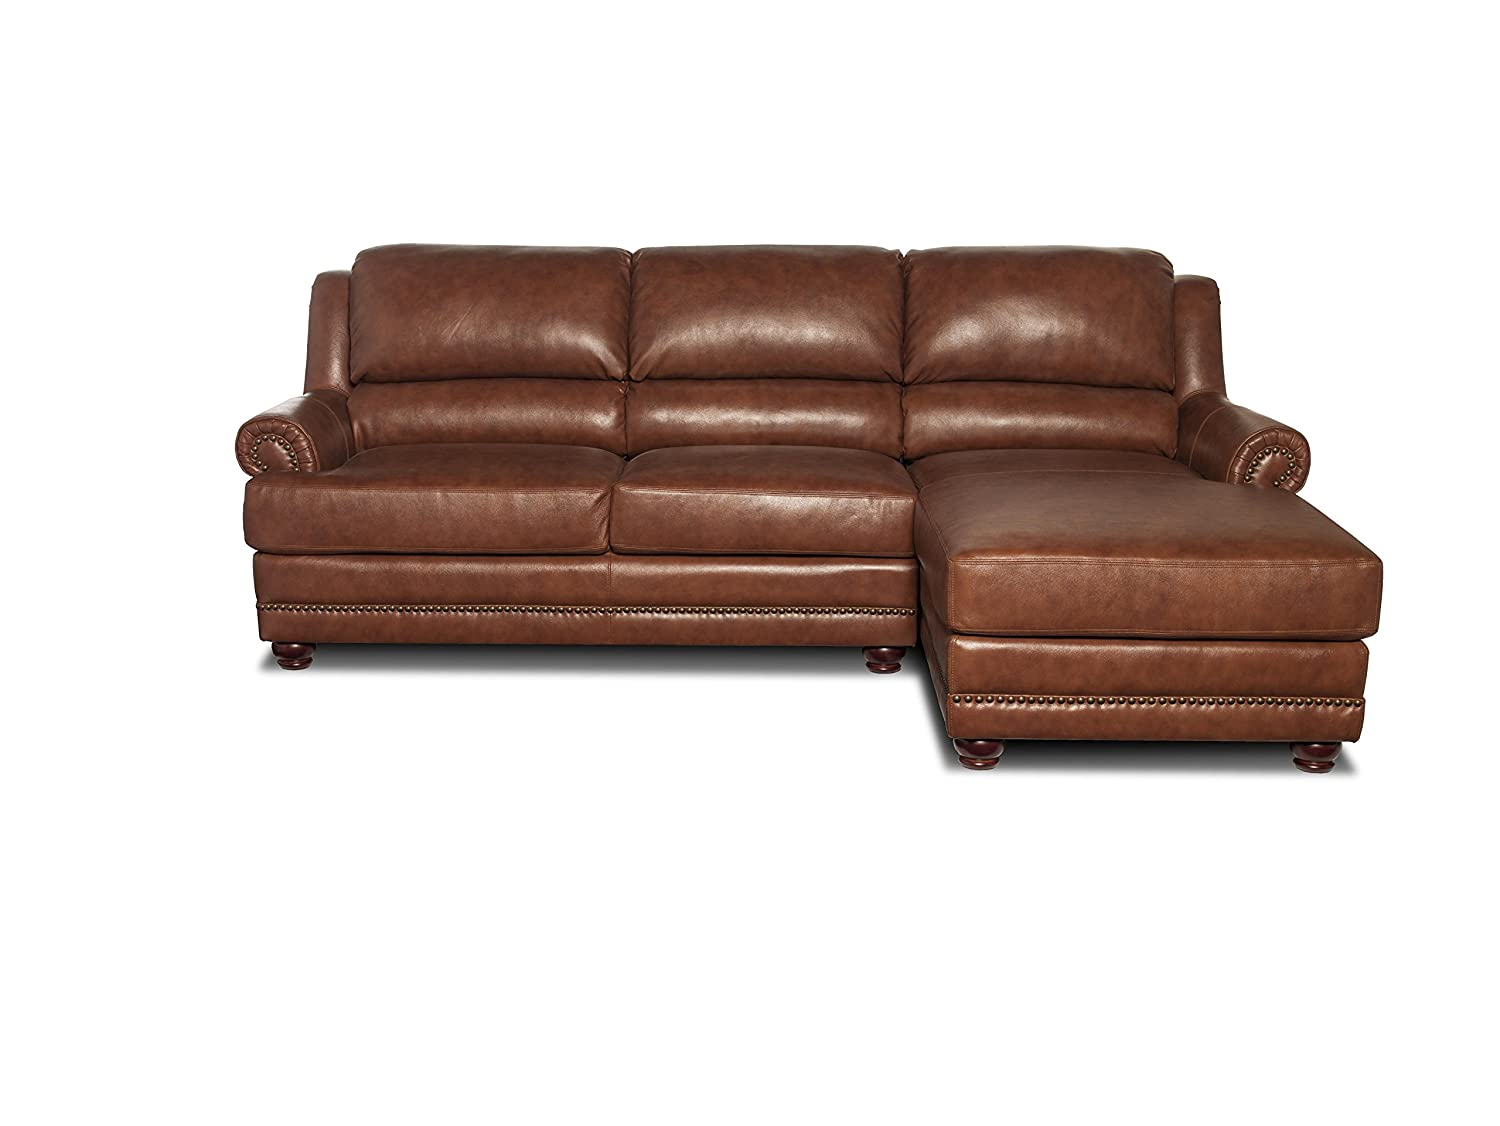 VENEZIA LEATHER SECTIONAL SOFA WITH CHAISE